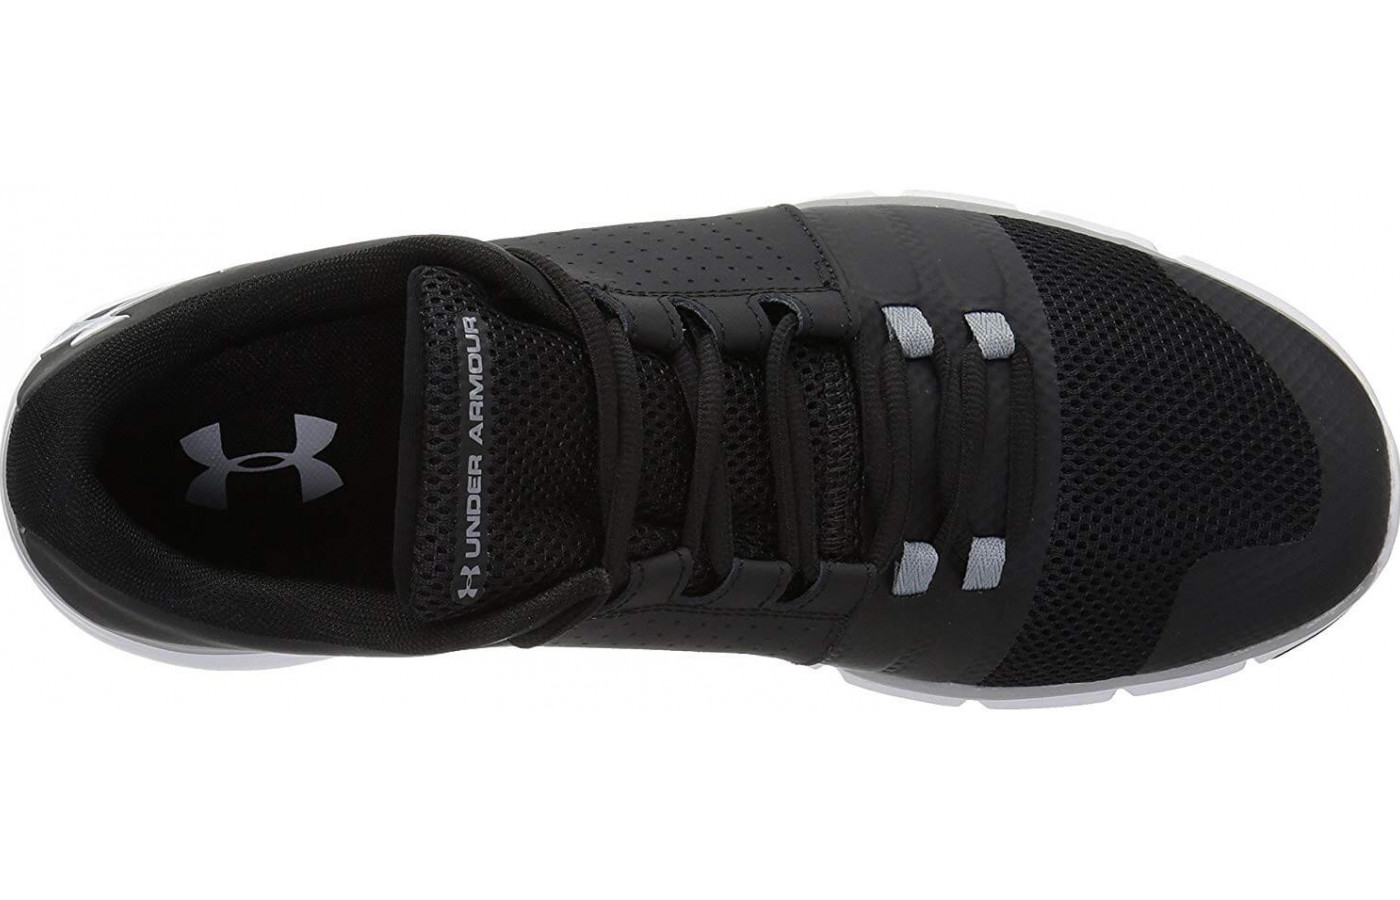 bb1422db4d4 Under Armour Strive 7 Fullyed   Compared - in May 2019